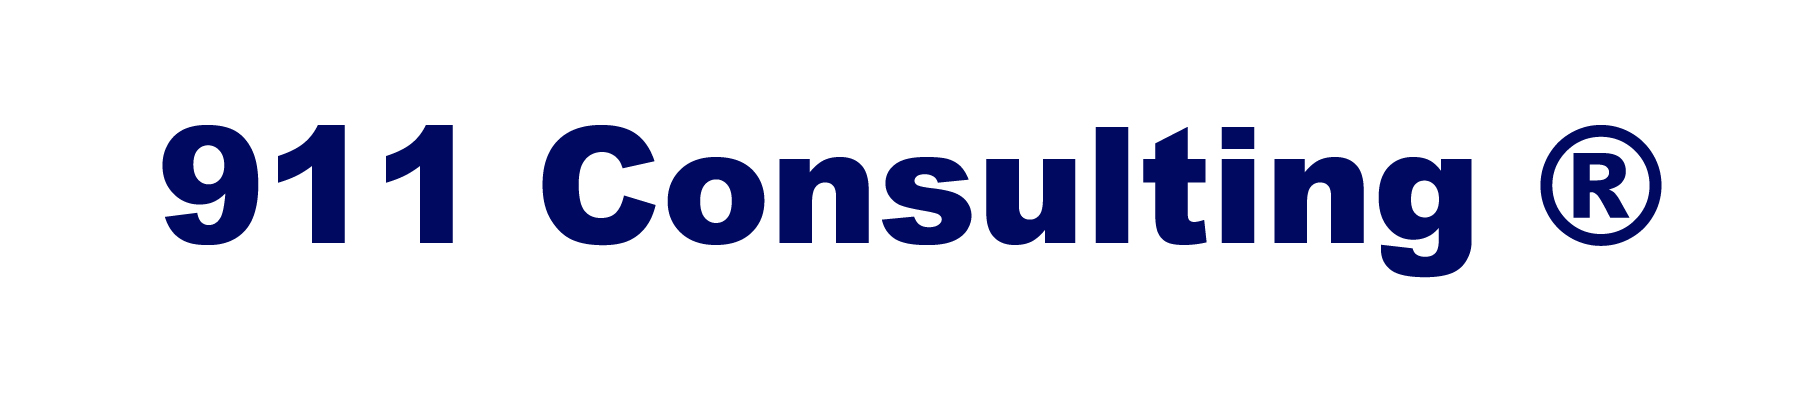 911Consulting